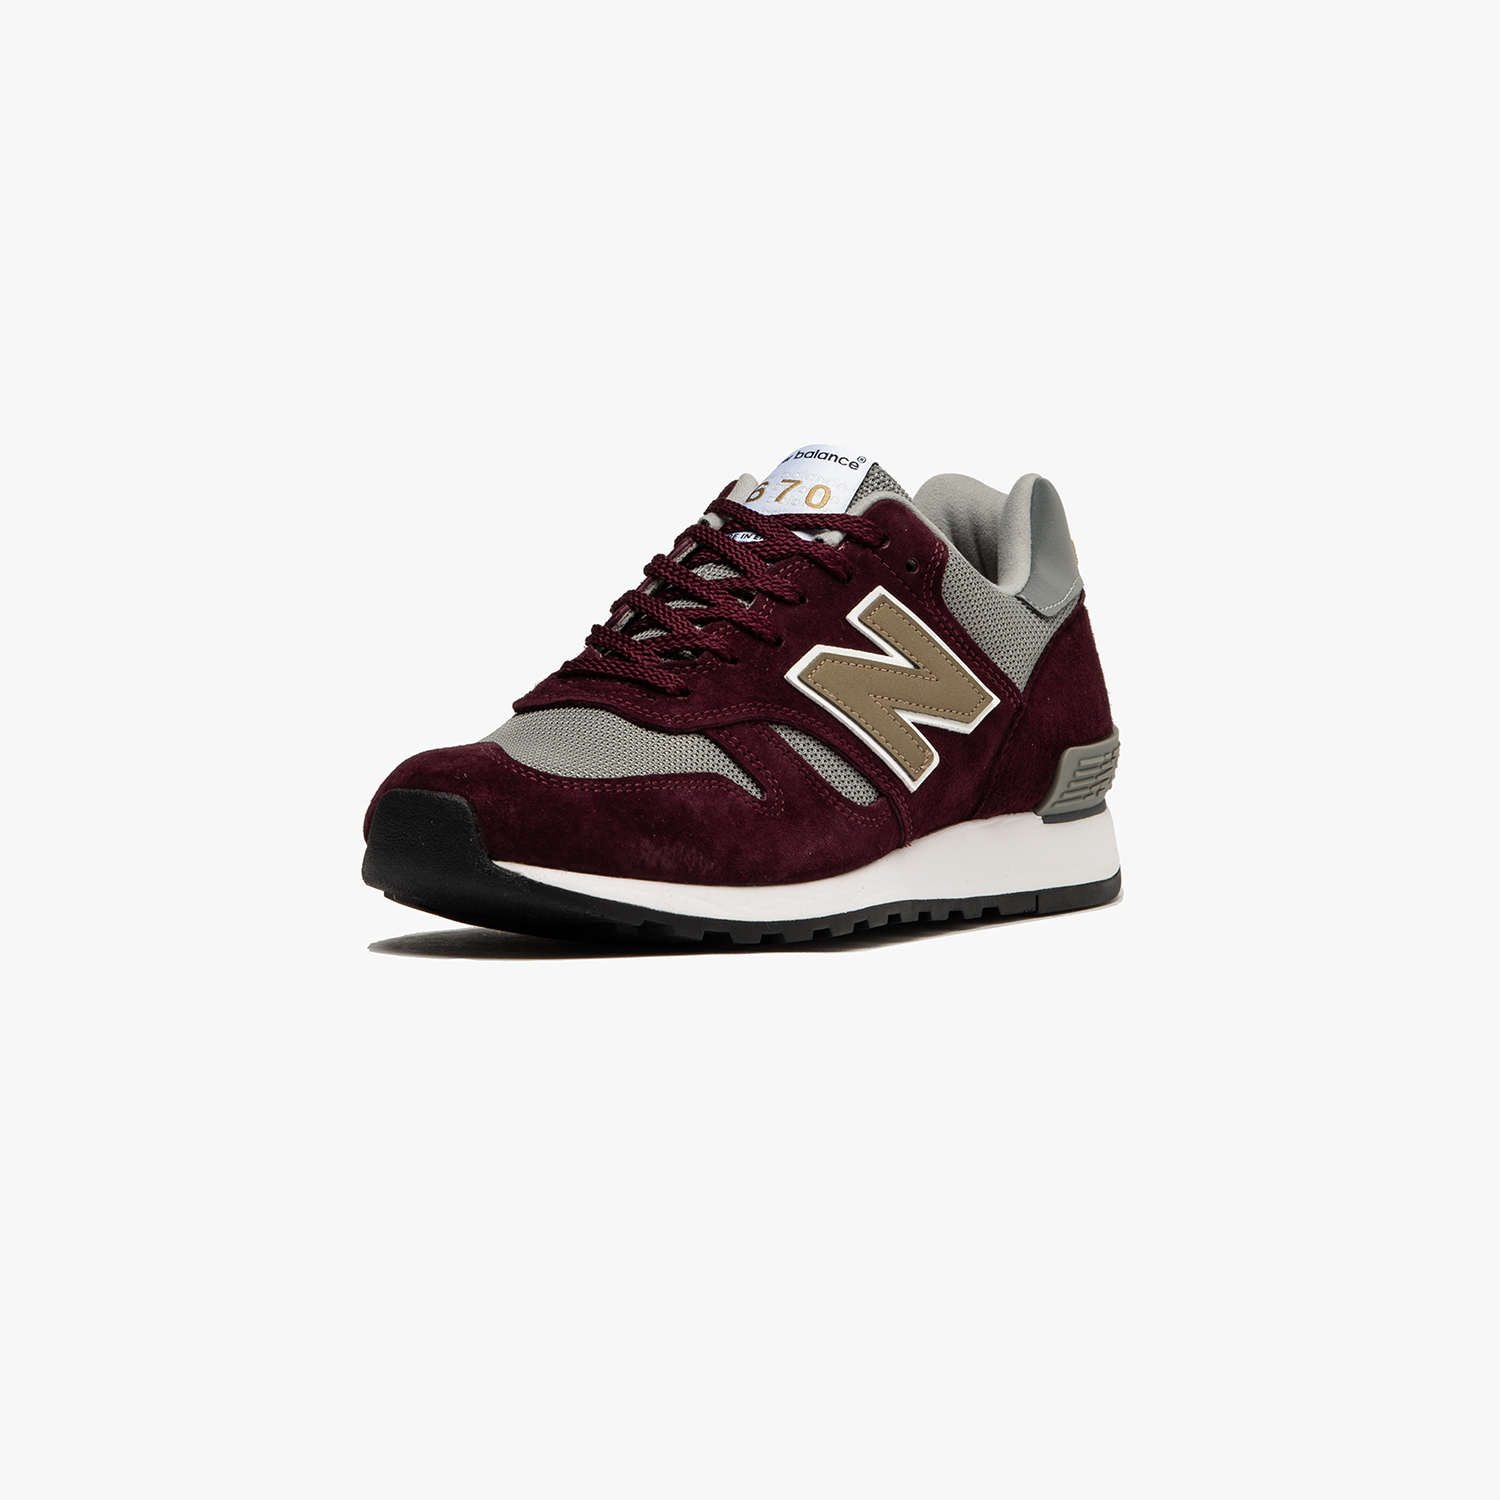 New Balance M670 Made in UK